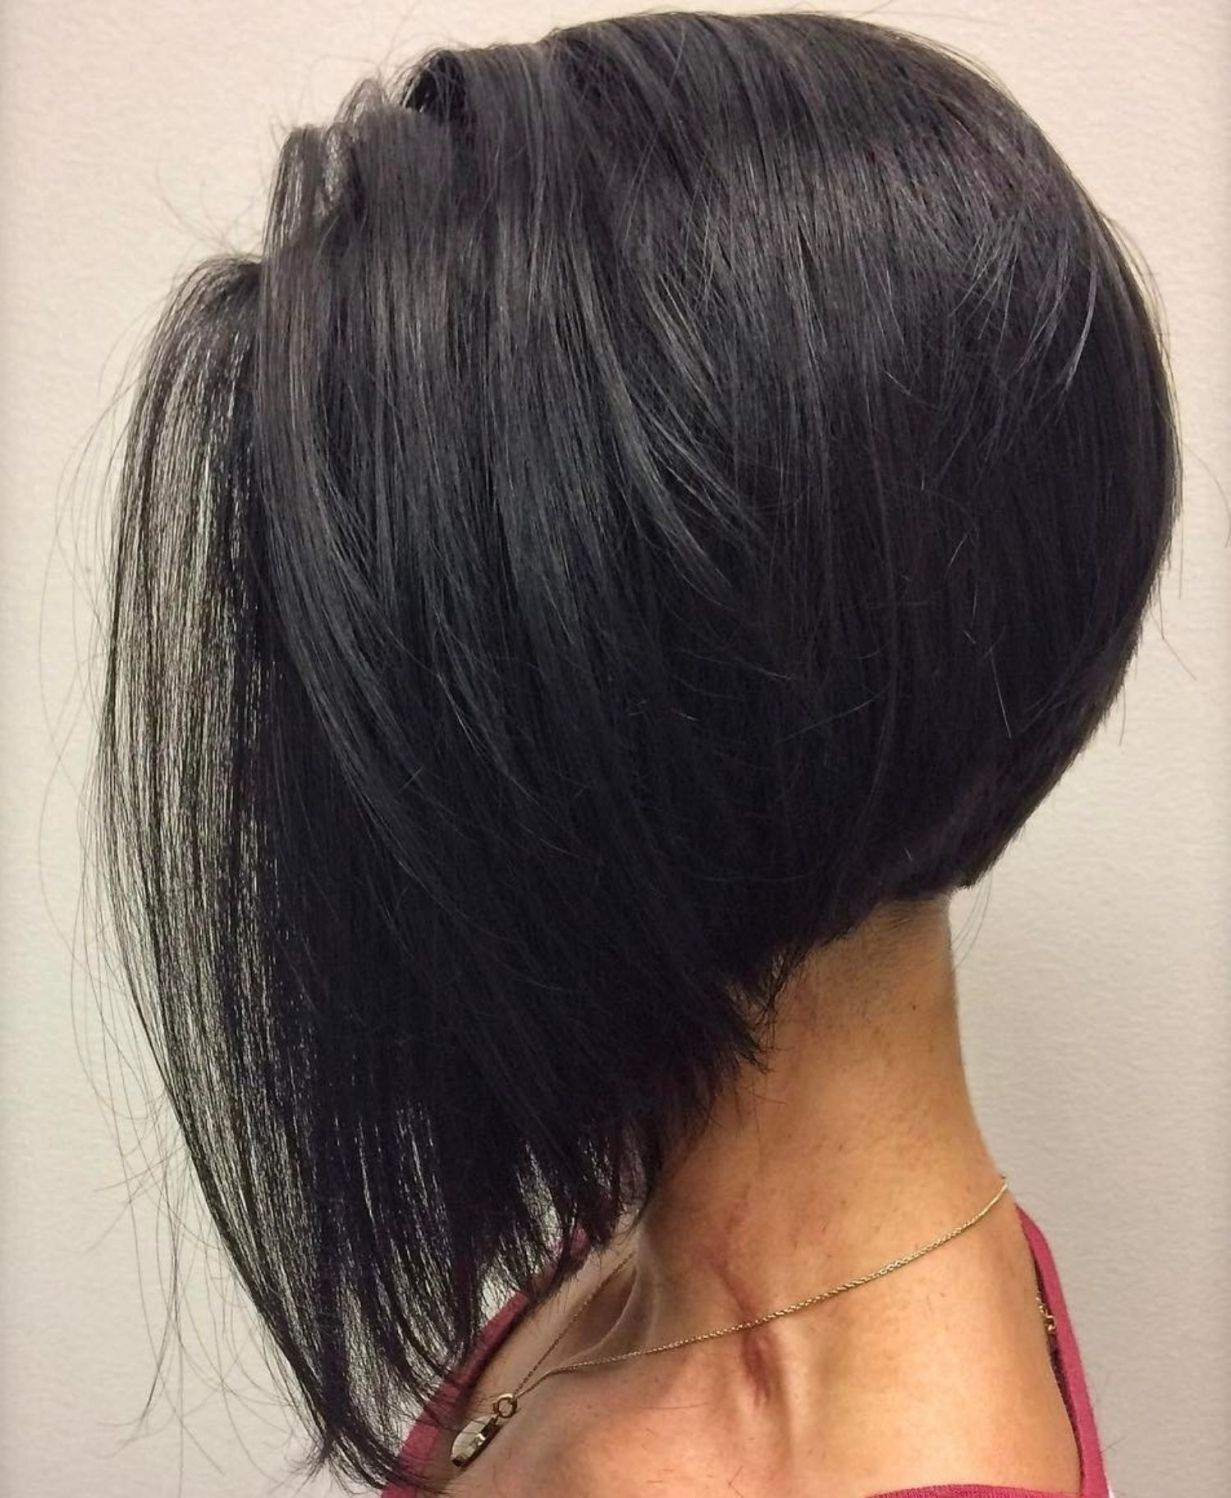 Long Inverted Bob With Elongated Front In 2020 Kapsels Bob Kapsels Dun Haar Kapsels Dun Haar